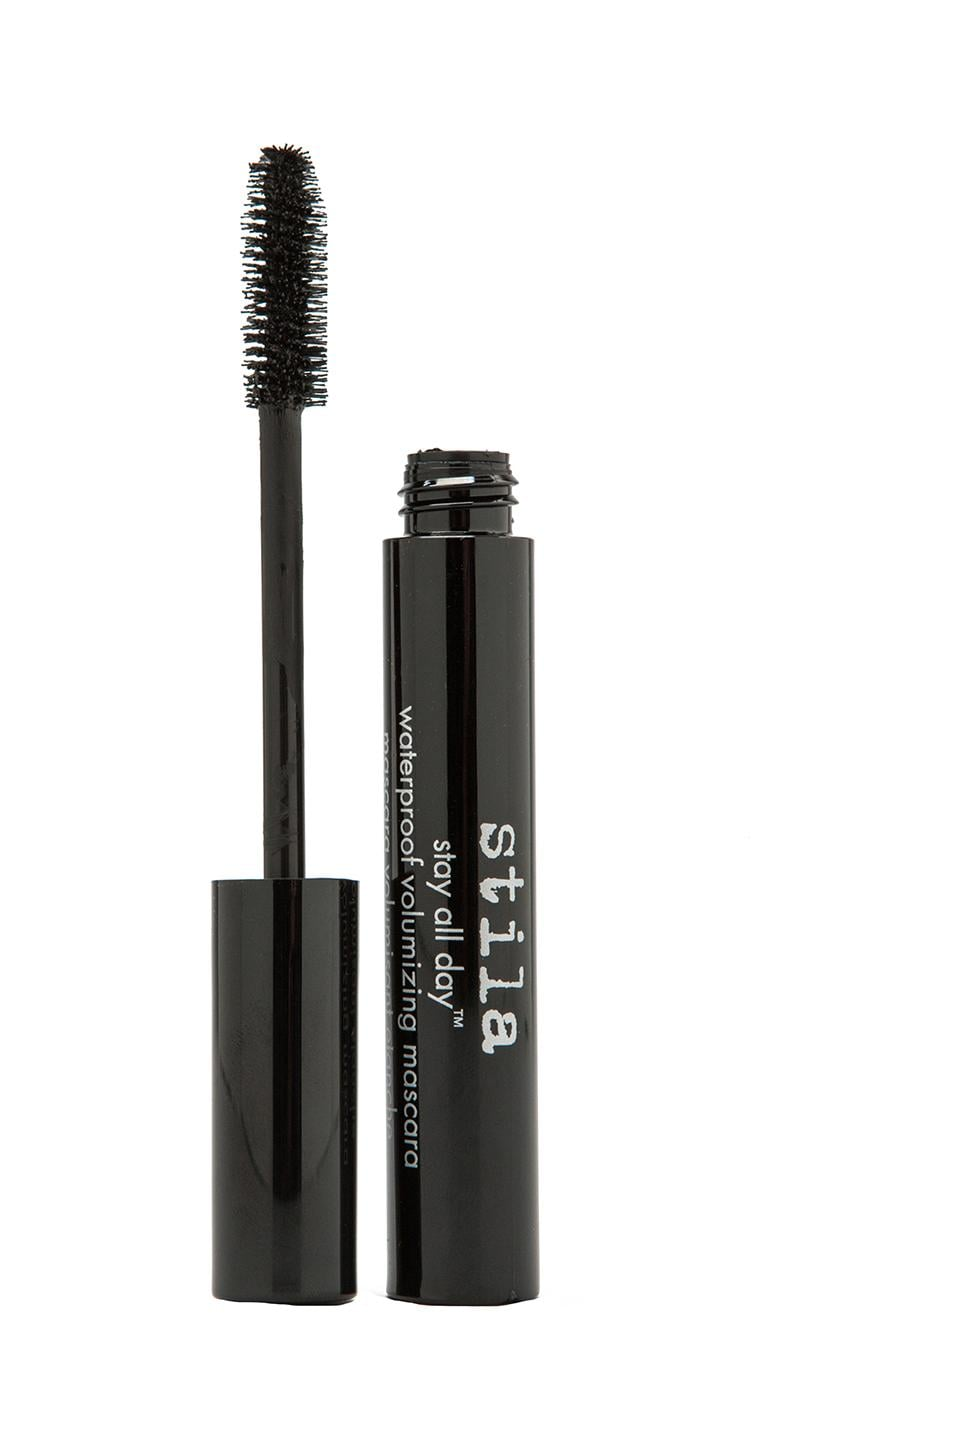 Stila Stay All Day Volumizing Waterproof Mascara